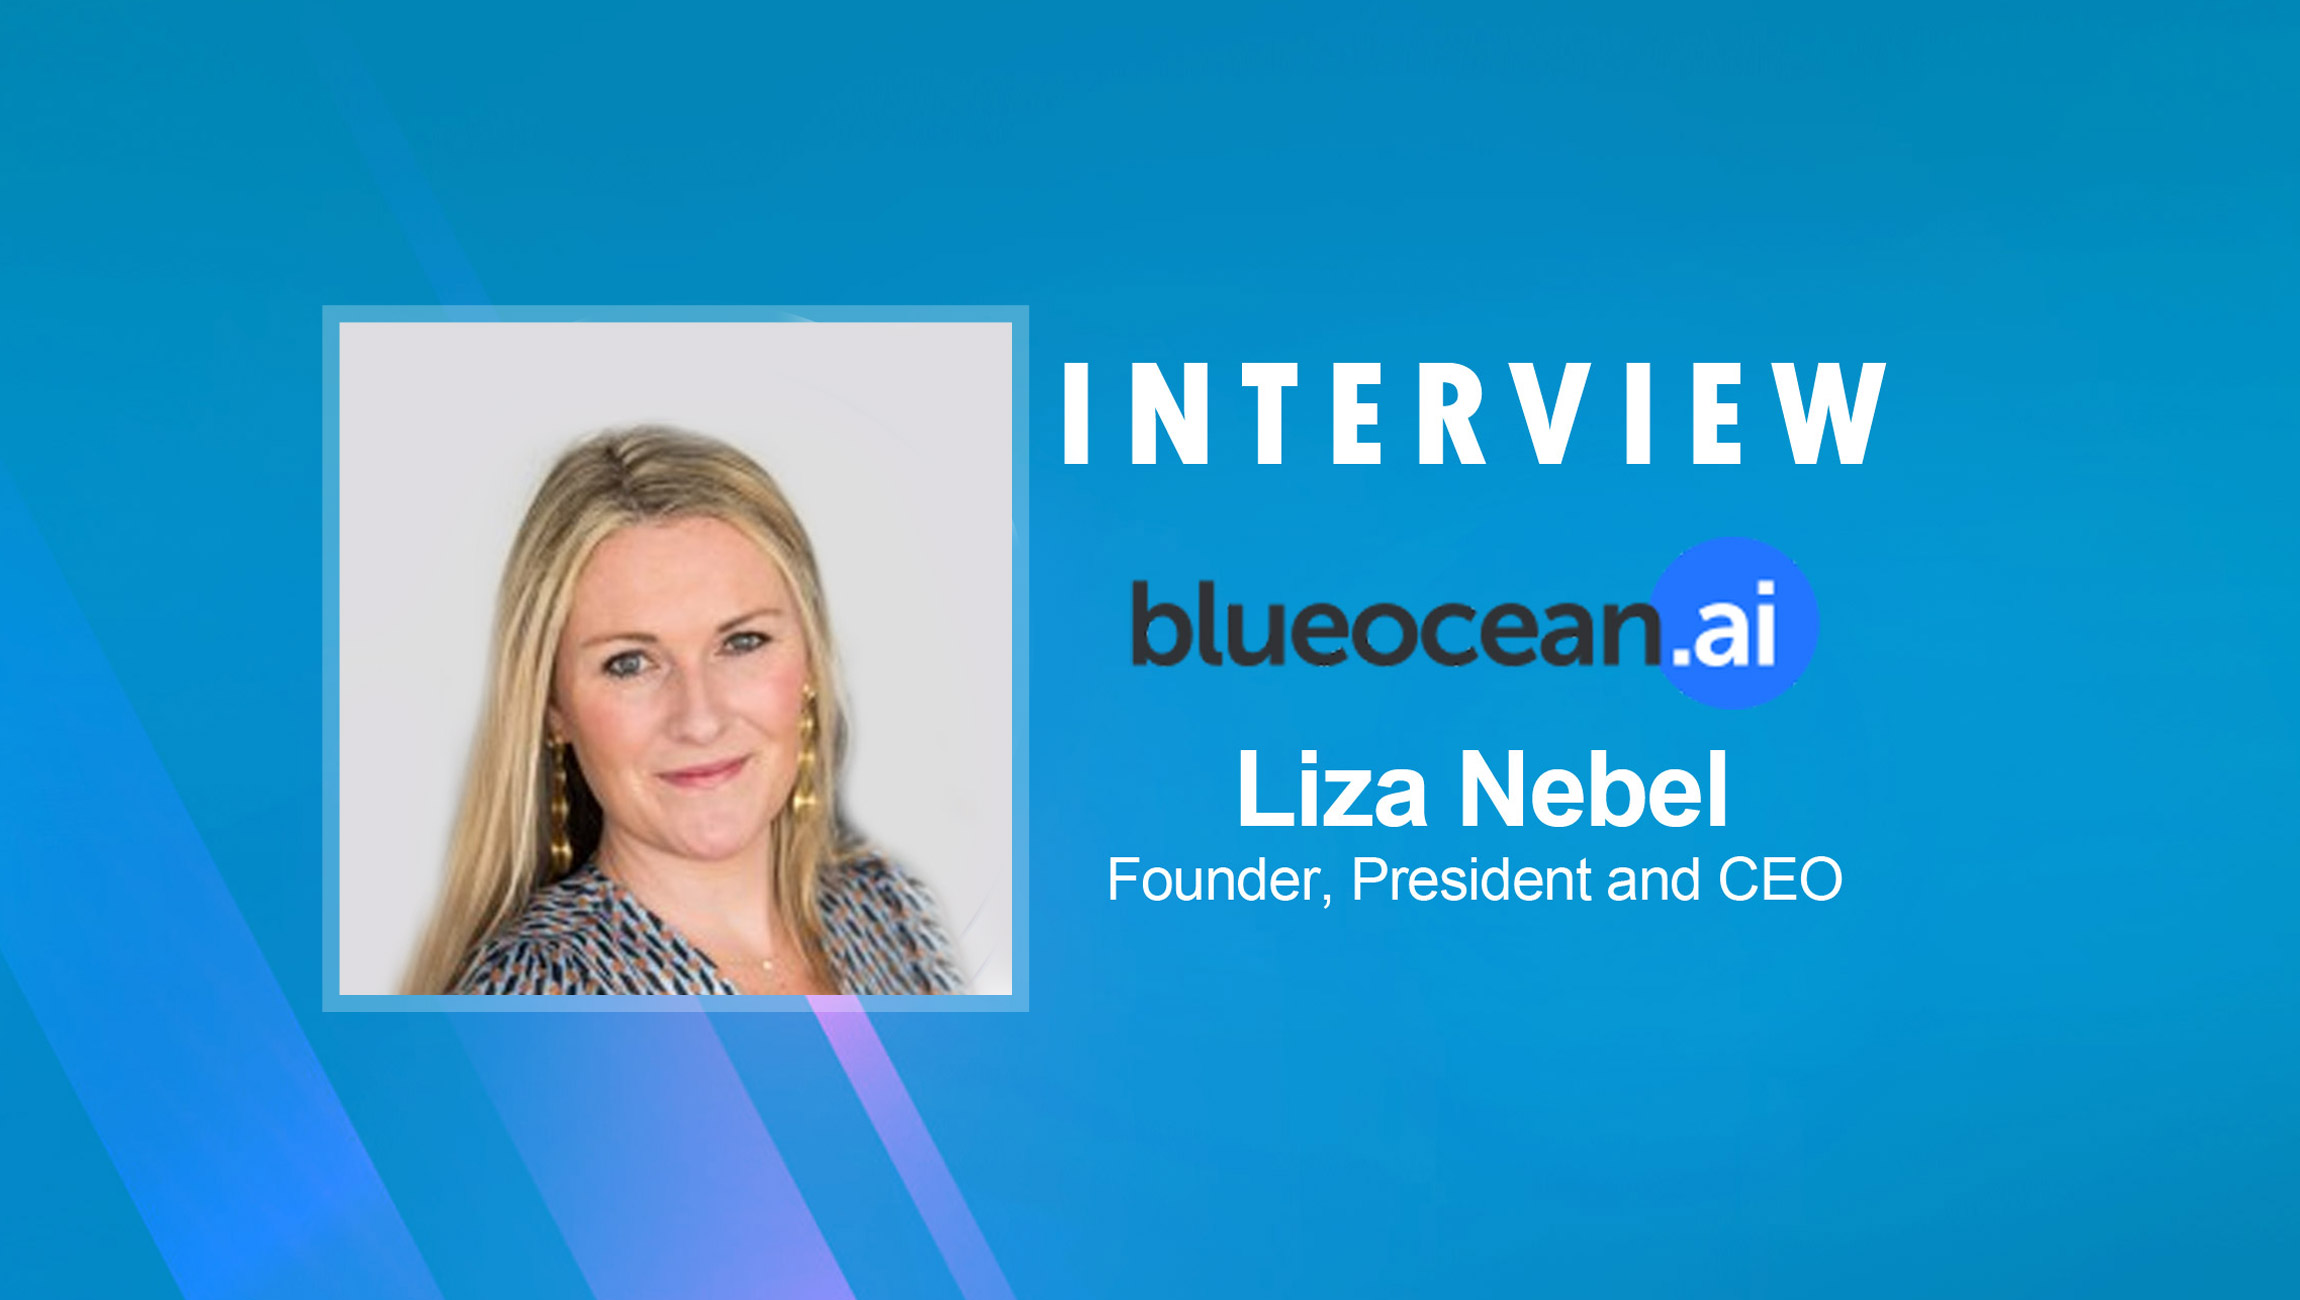 SalesTechStar Interview with Liza Nebel, Founder, President and CEO at BlueOcean